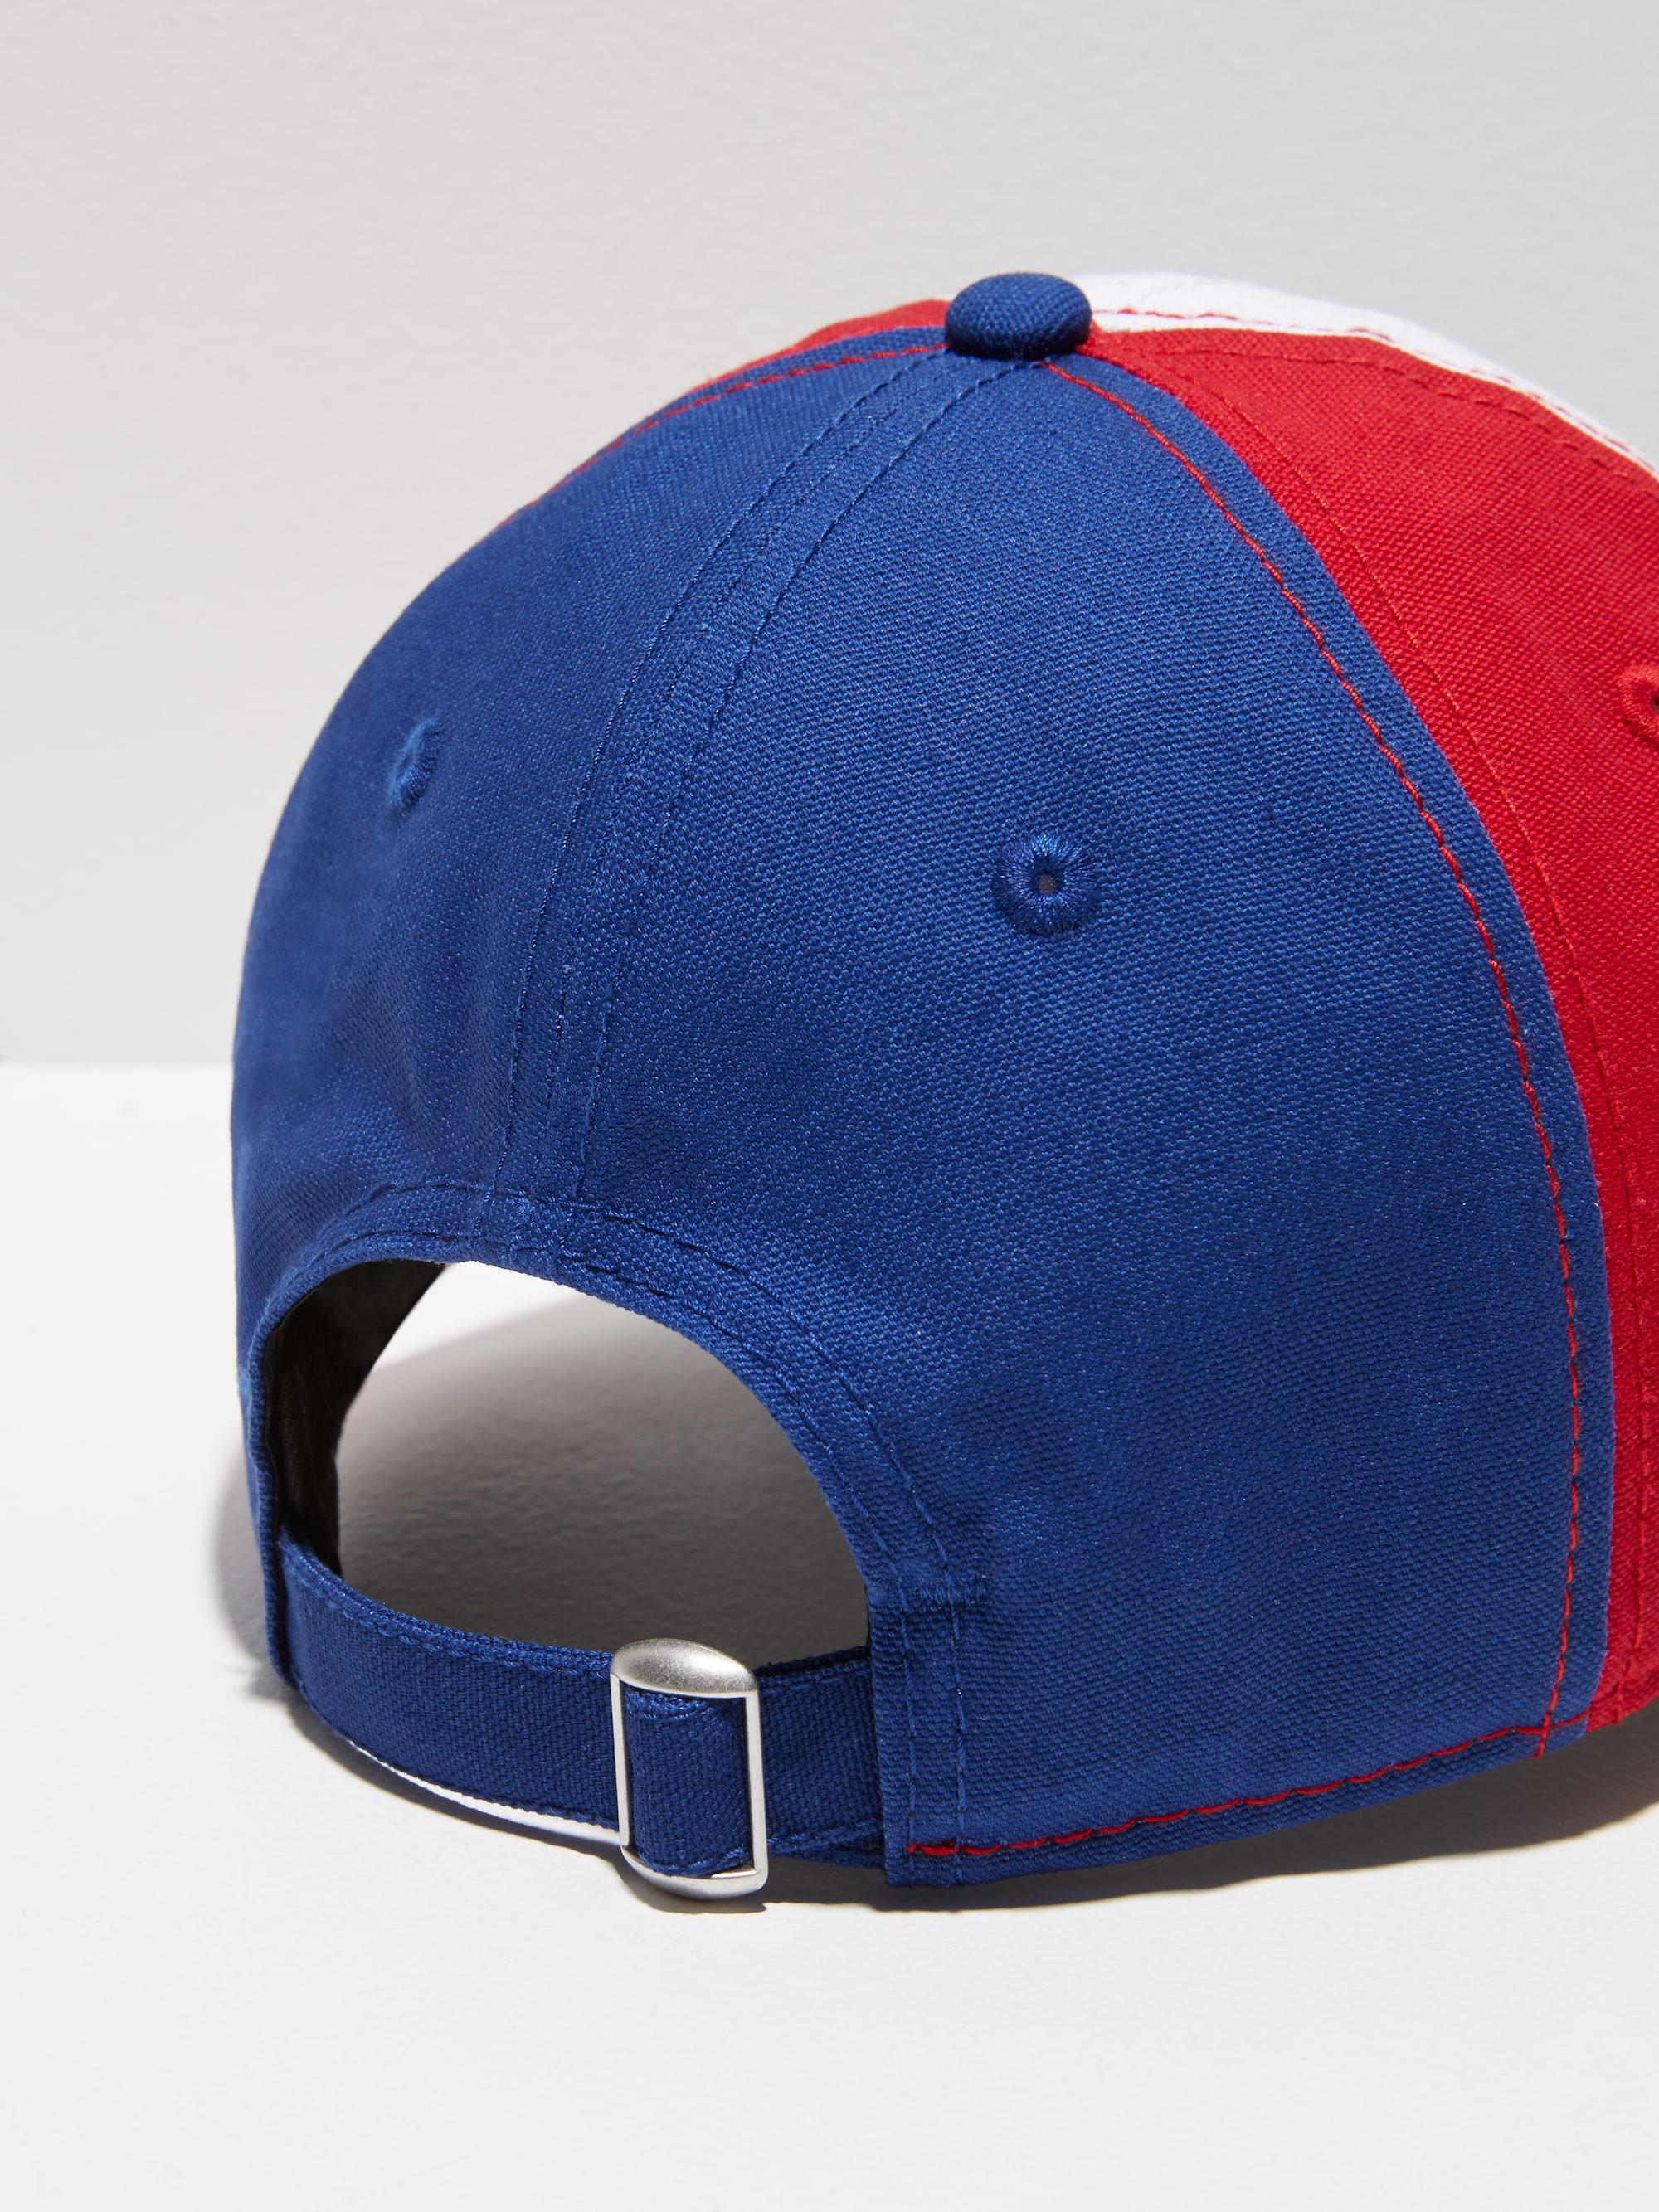 faa90ab3515b3 Lyst - Frank And Oak Montreal Expos Micro Logo Cap in Blue for Men